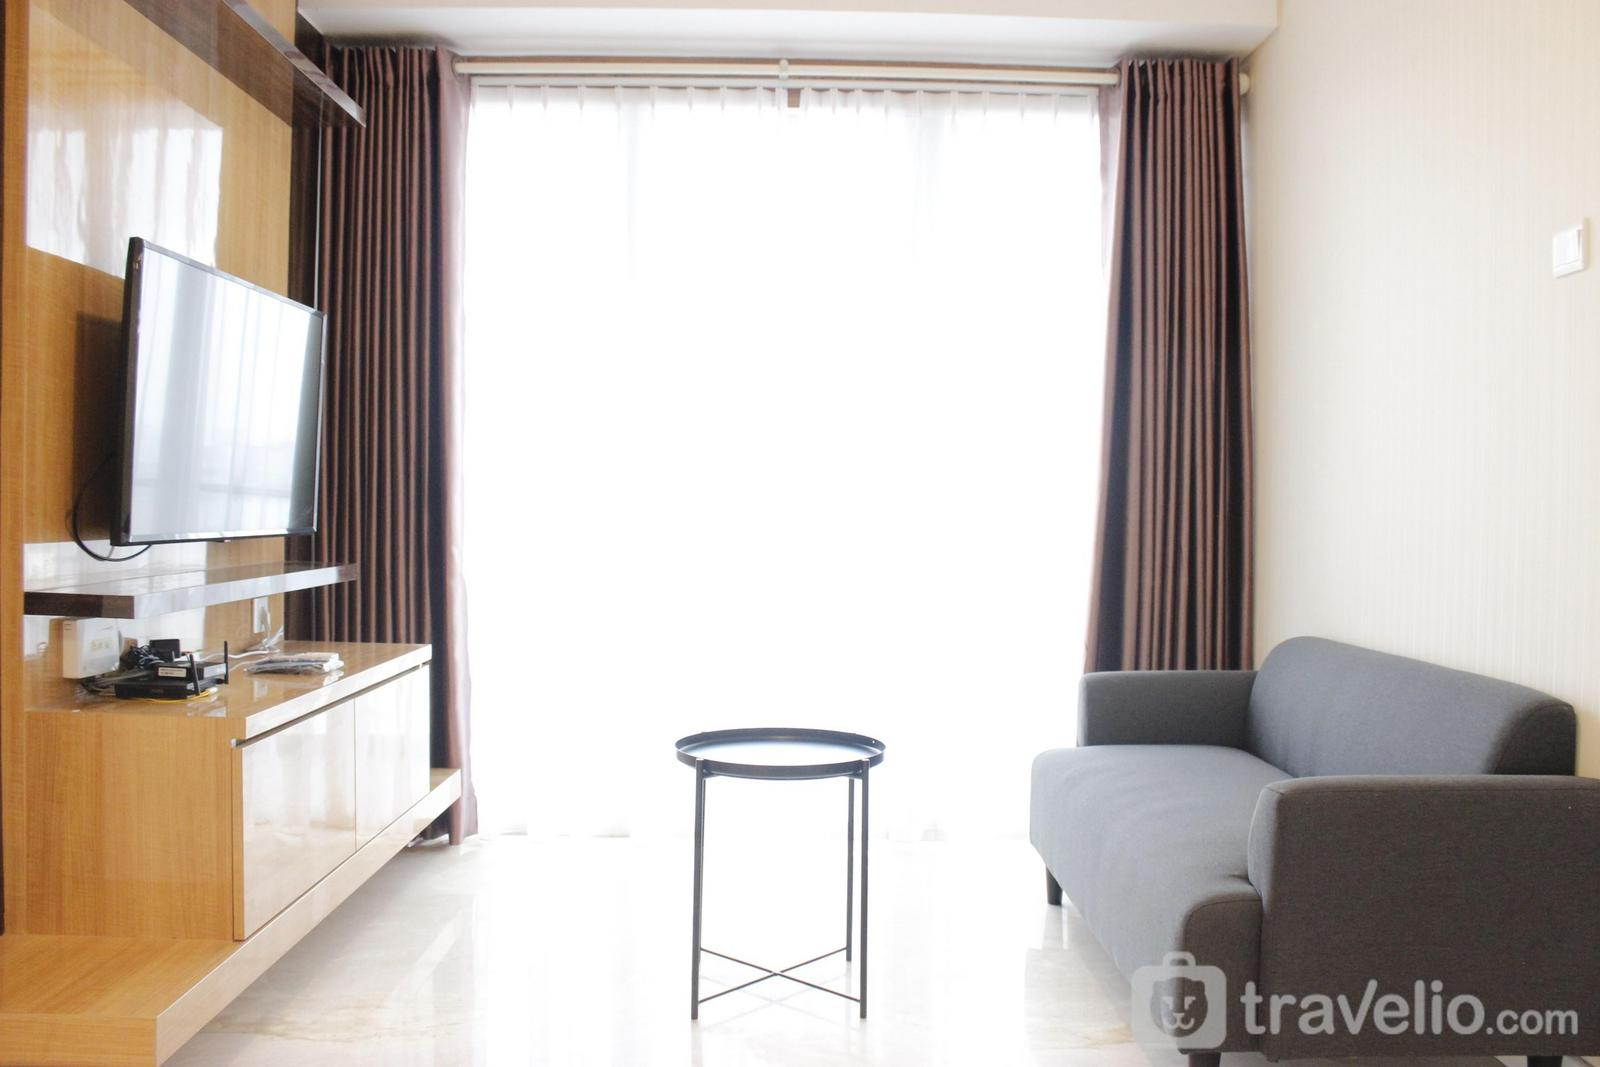 Landmark Residence Bandung - Deluxe & Cozy 2BR Apartment at Landmark Residence By Travelio